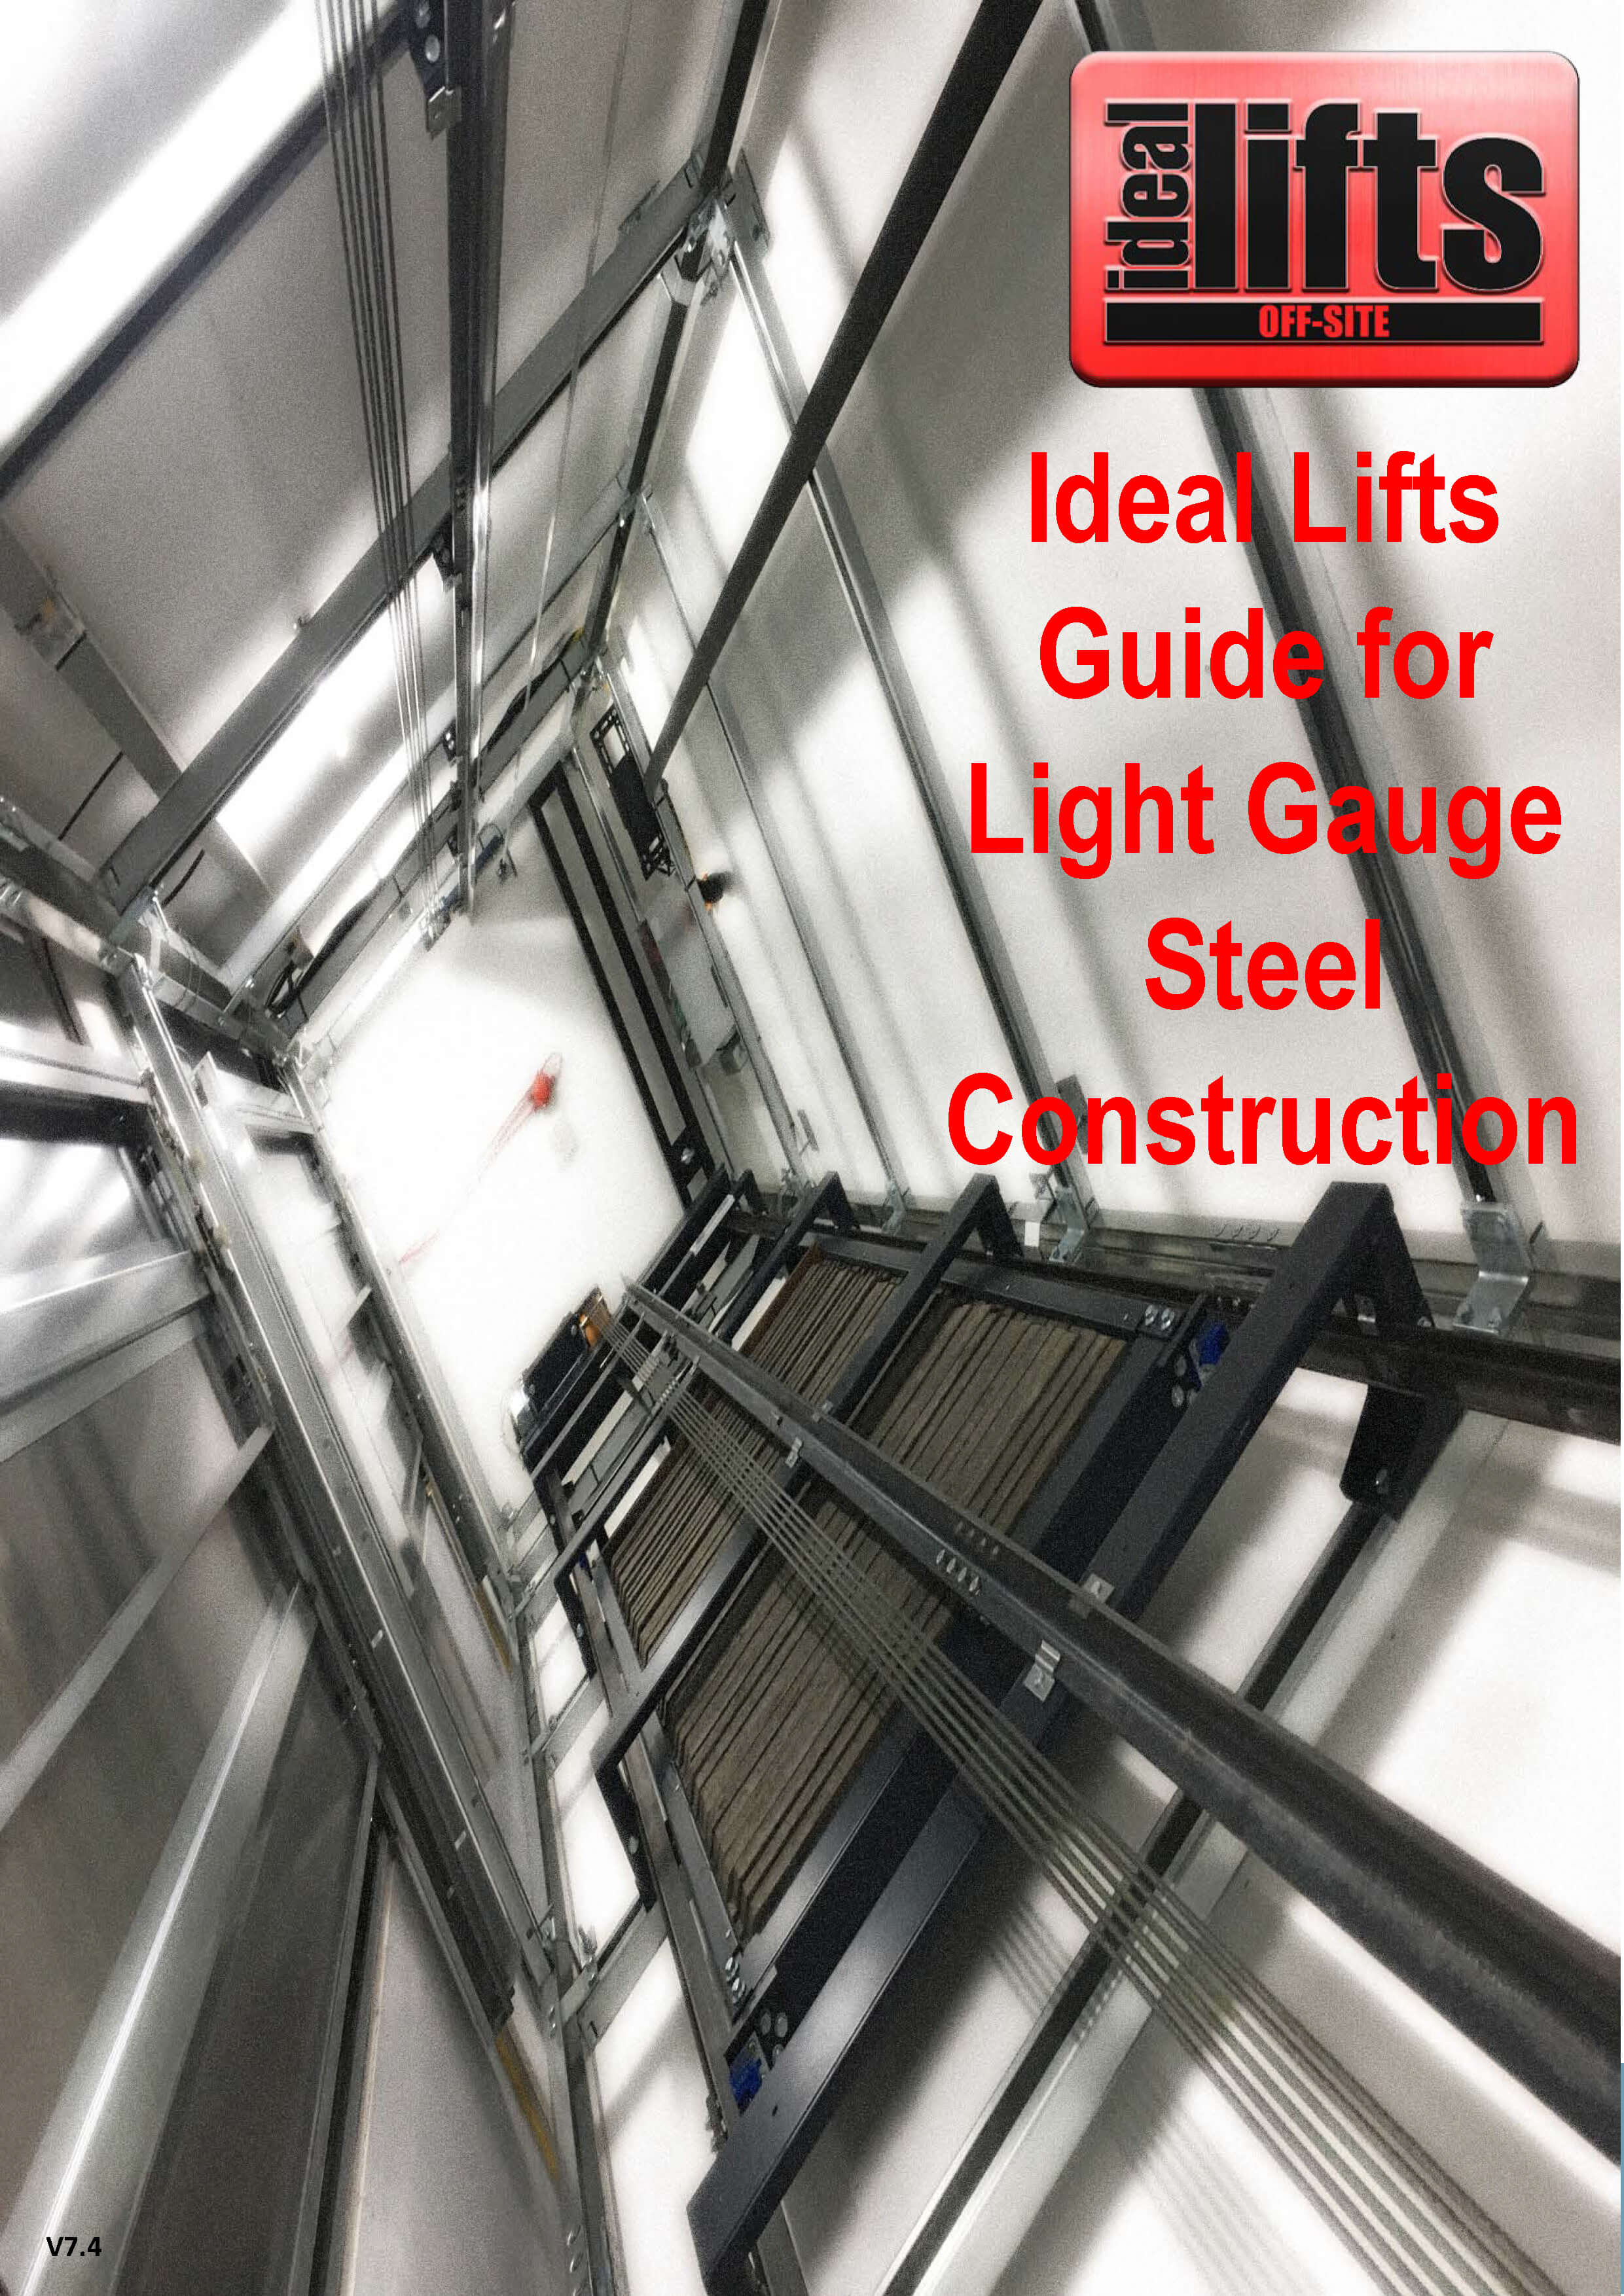 Light Gauge Steel Passenger Lift Installations